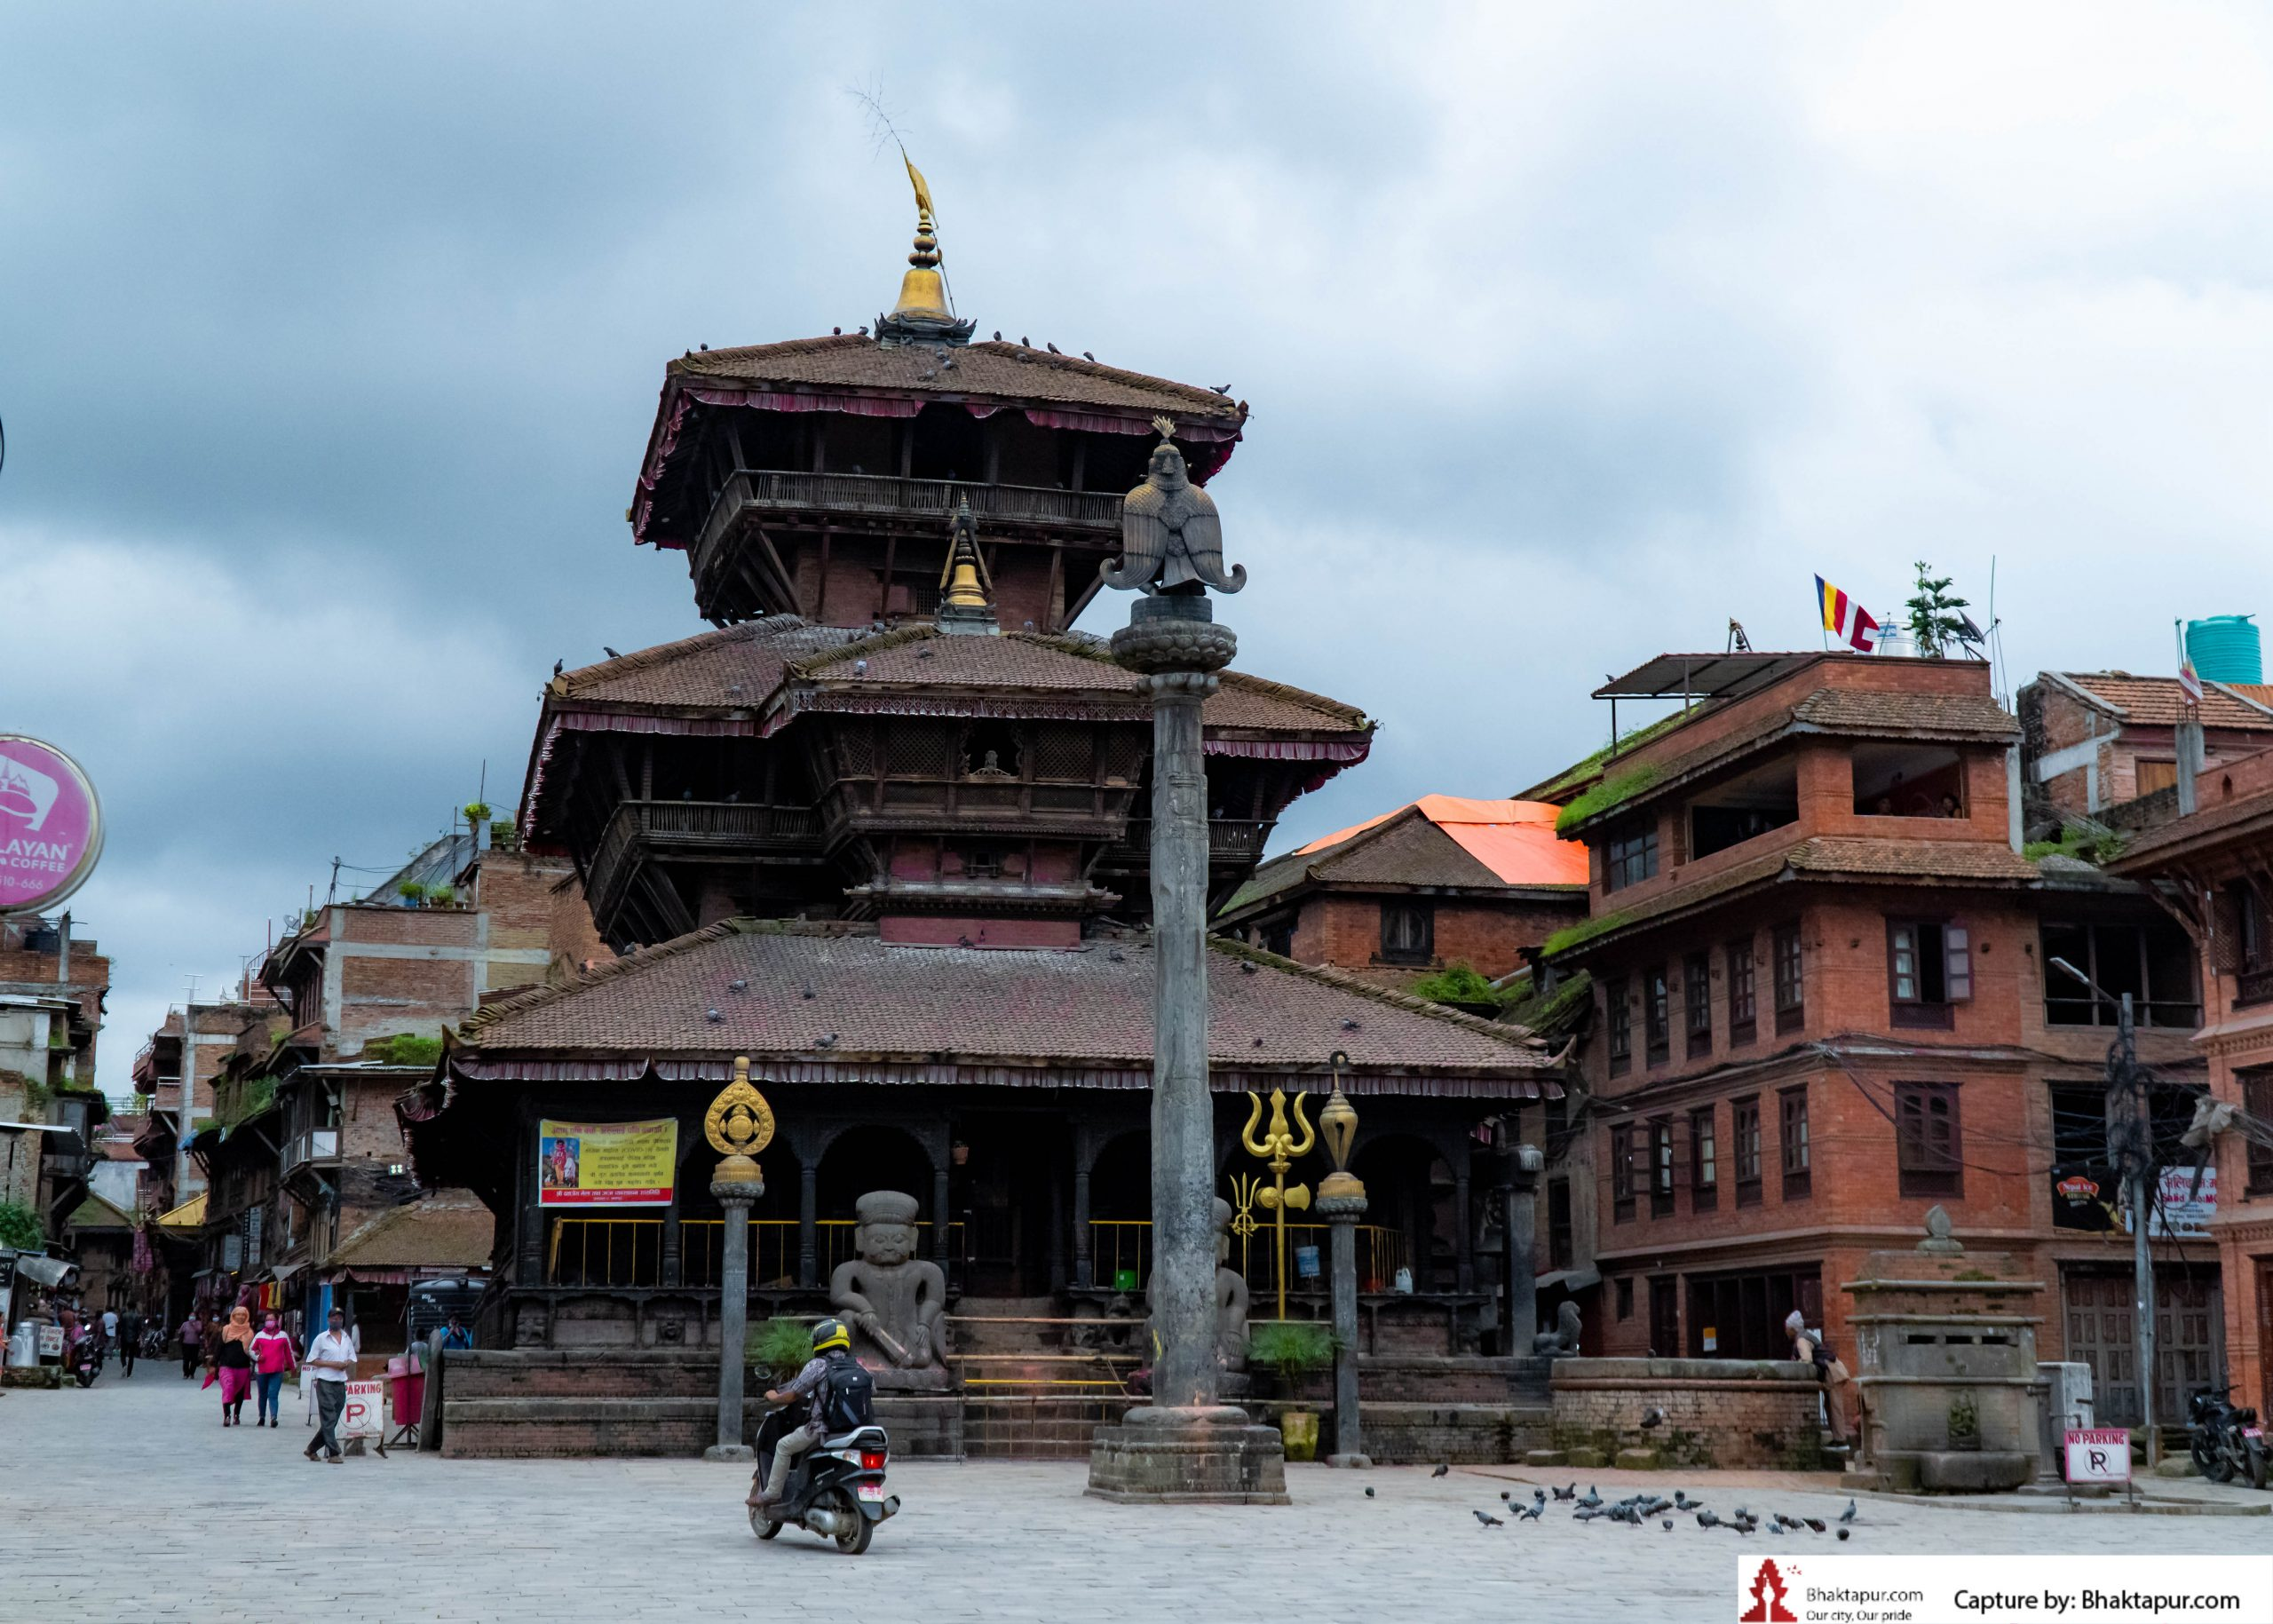 https://www.bhaktapur.com/wp-content/uploads/2021/08/erotic-carving-31-of-137-scaled.jpg